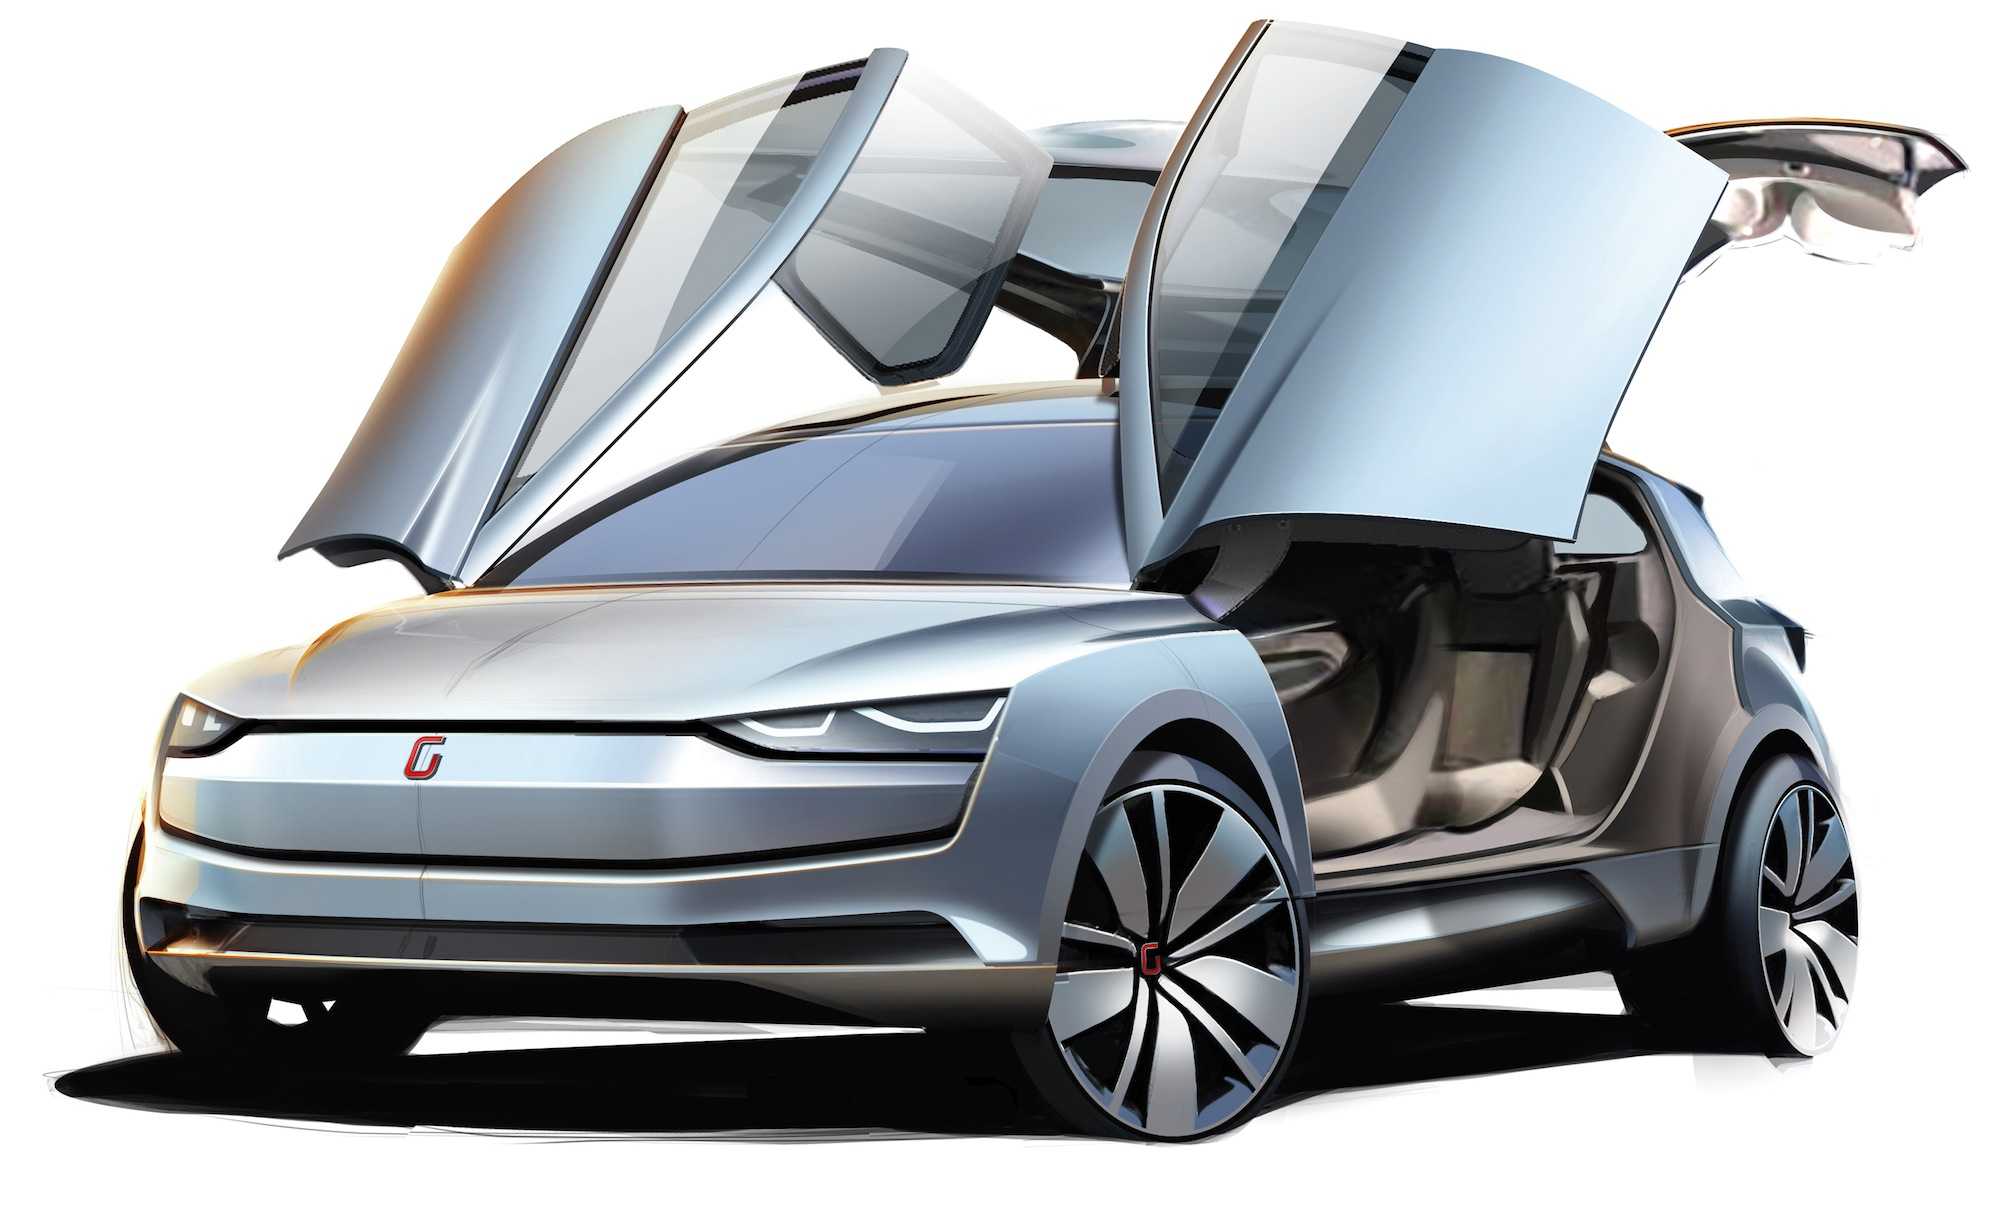 italdesign giugiaro clipper all electric four wheel drive golf inspired mpv premieres photos. Black Bedroom Furniture Sets. Home Design Ideas